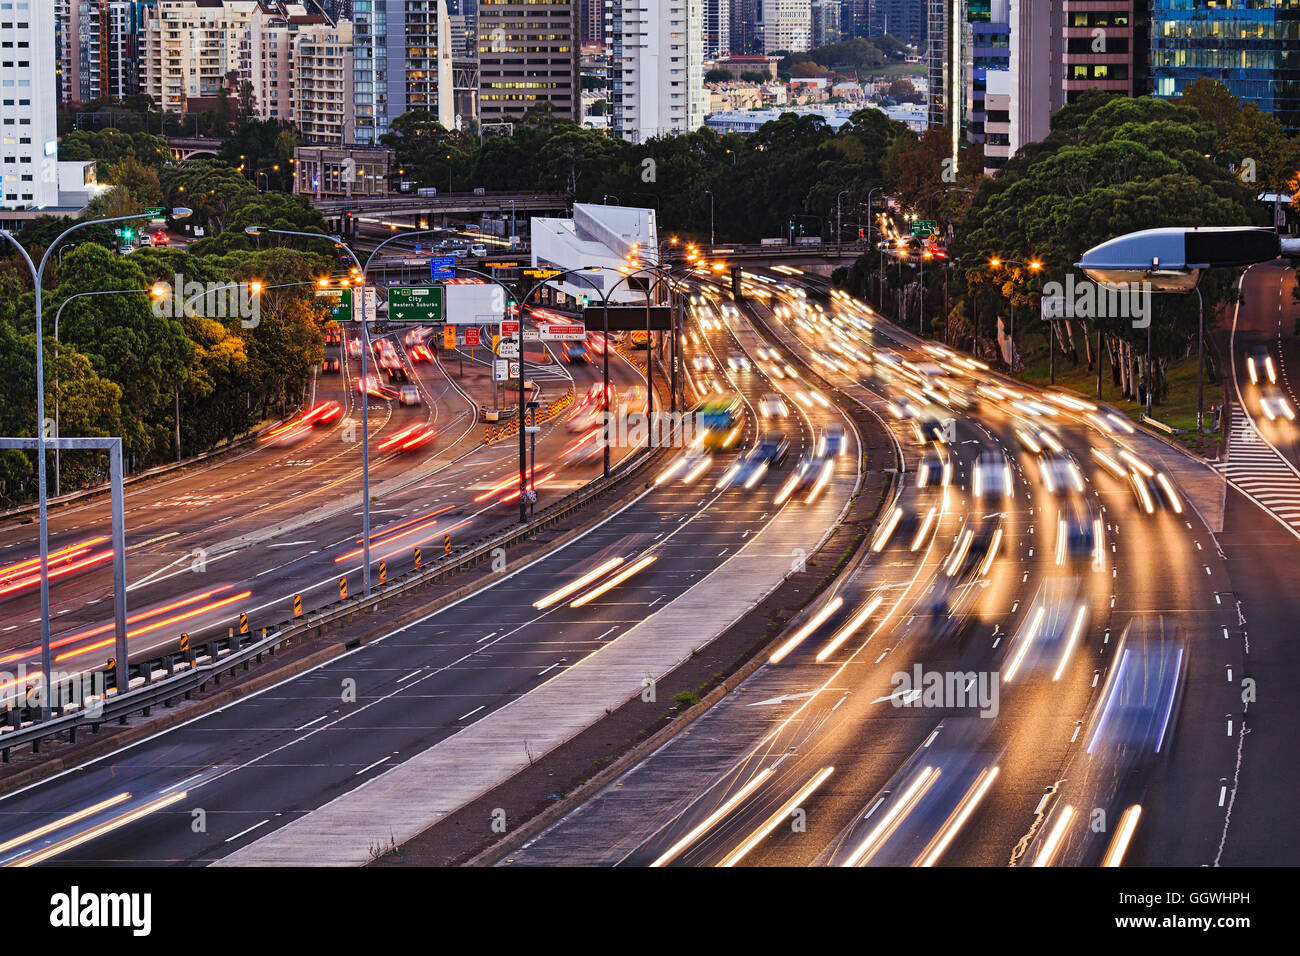 Busy warringah freeway motor road going through Sydney city CBD at sunset. Intense traffic lights blurred at long - Stock Image